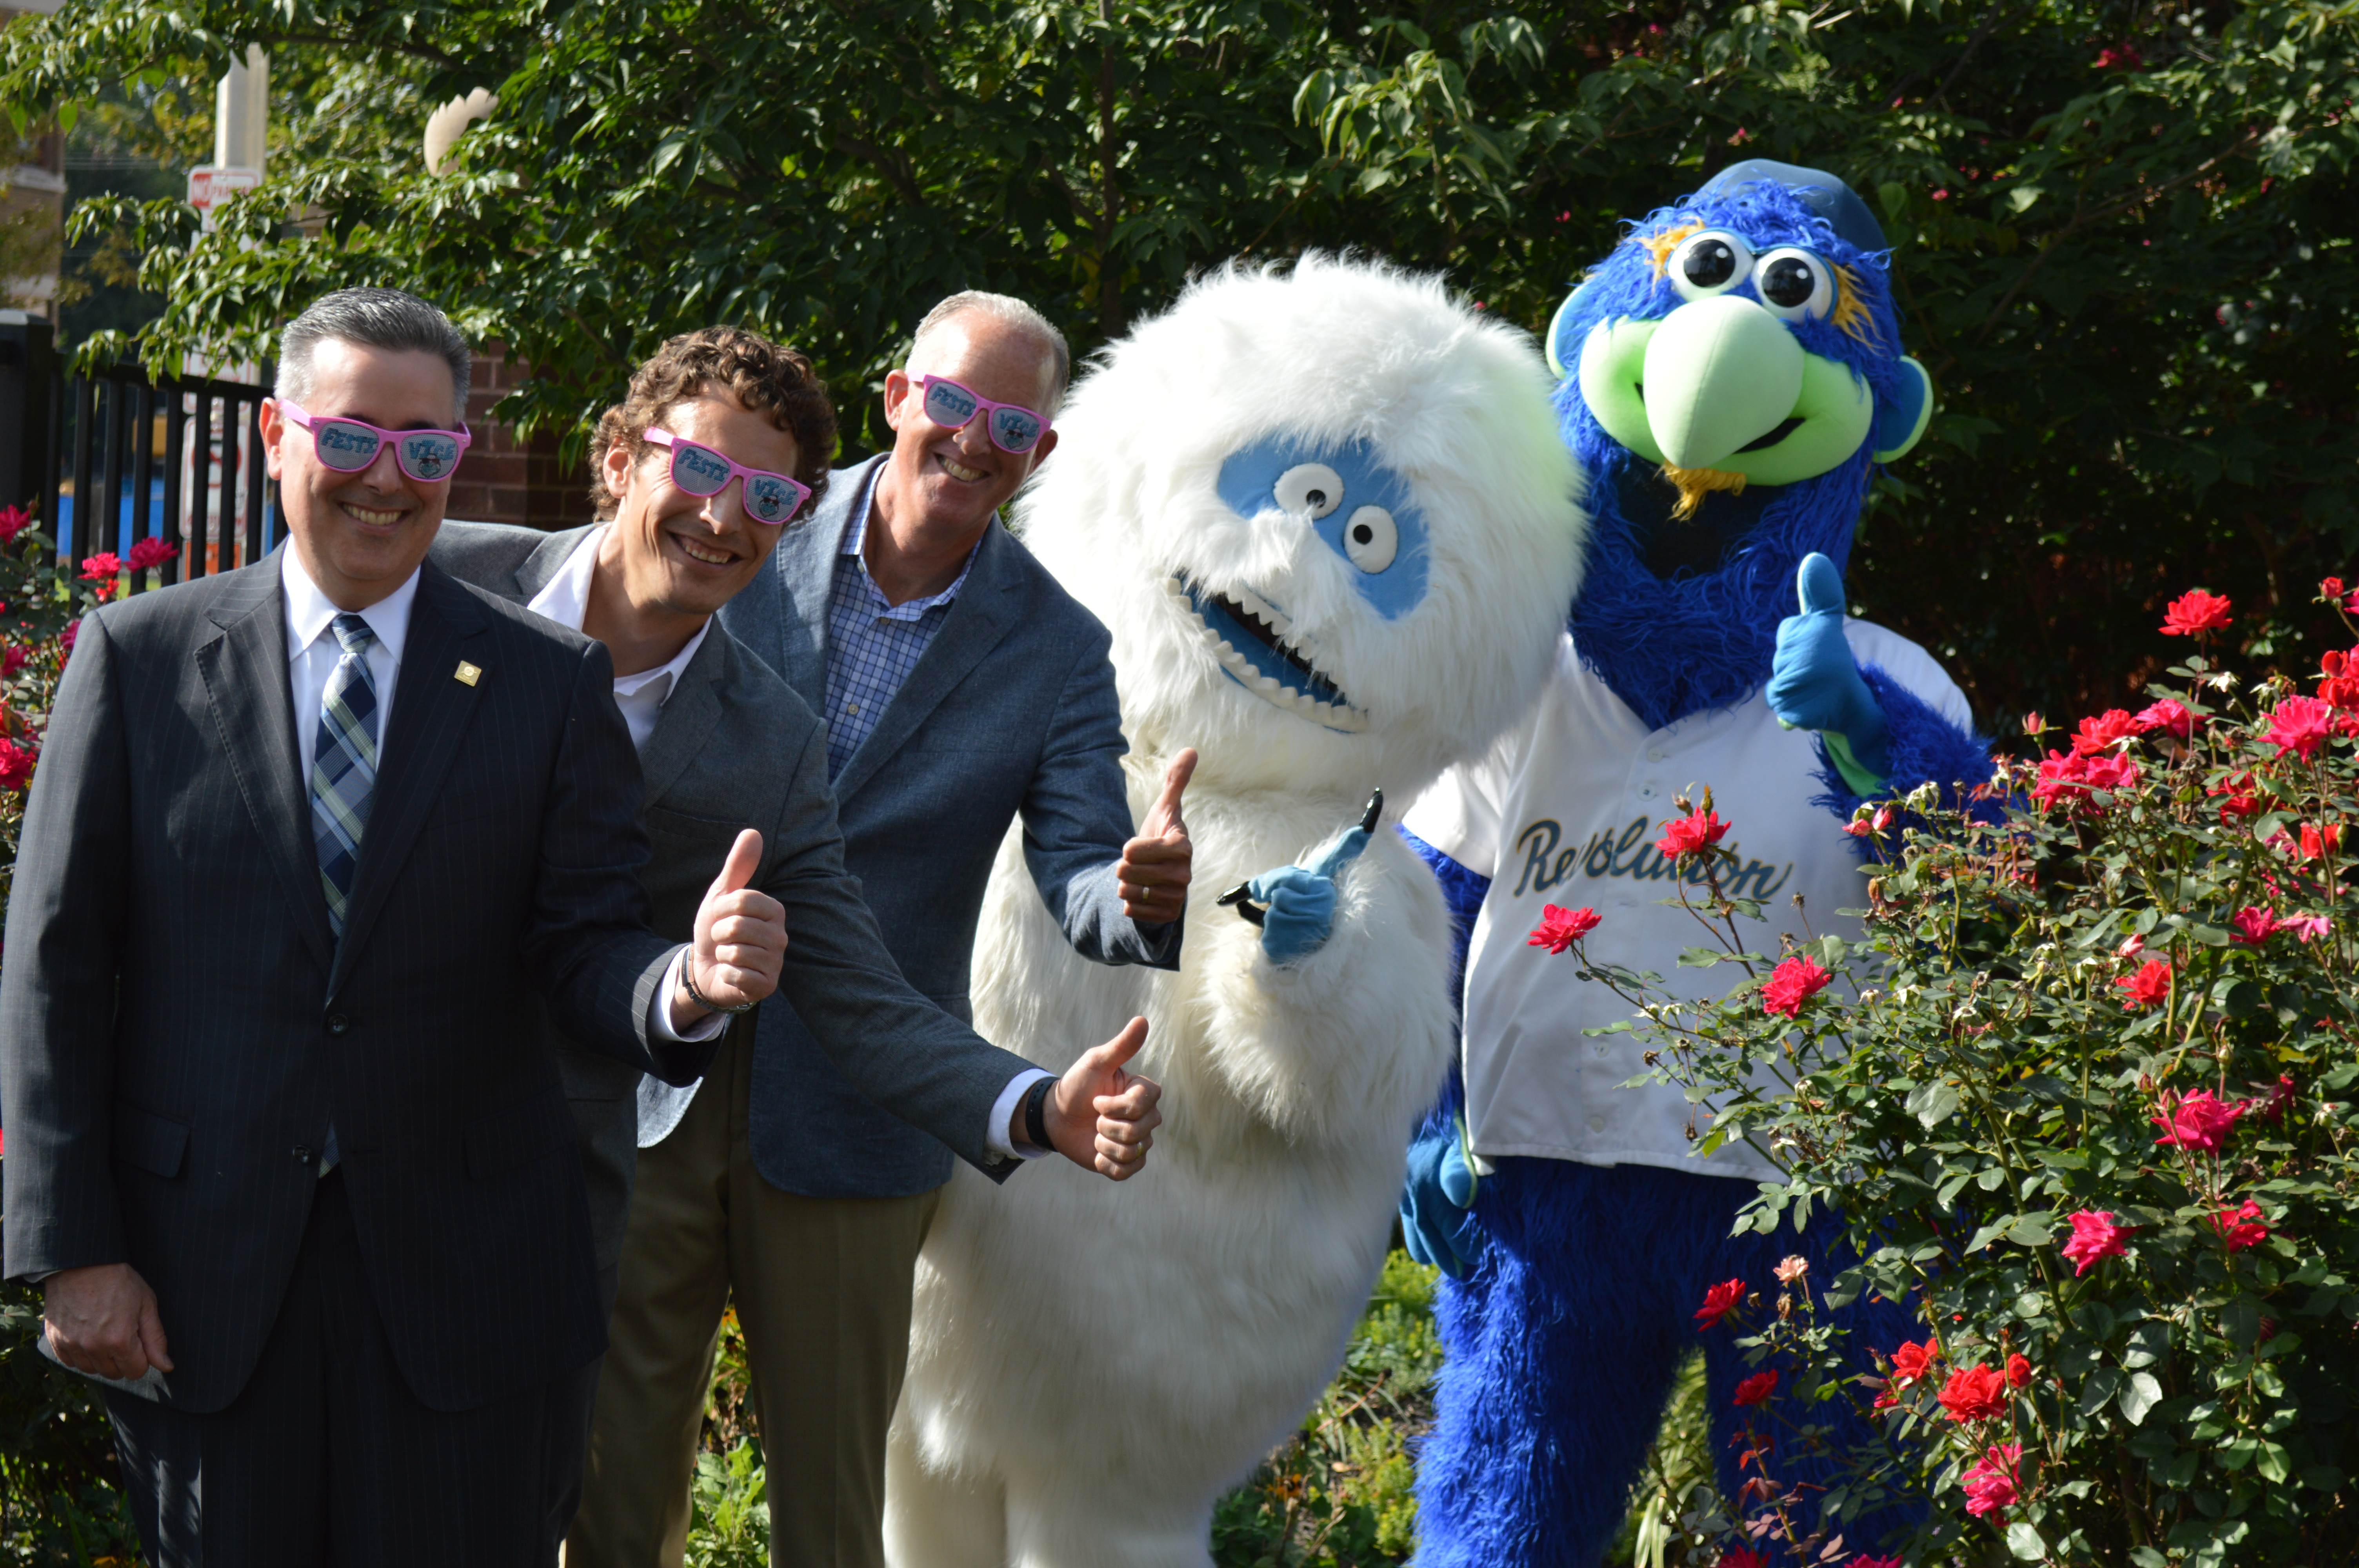 Traditions Bank President & CEO Eugene Draganosky, left, Eventive Director Adam Nugent, and York Revolution President Eric Menzer join the FestivICE Yeti and Revolution mascot DownTown in celebrating the extension of Traditions Bank's sponsorship of Eventive.